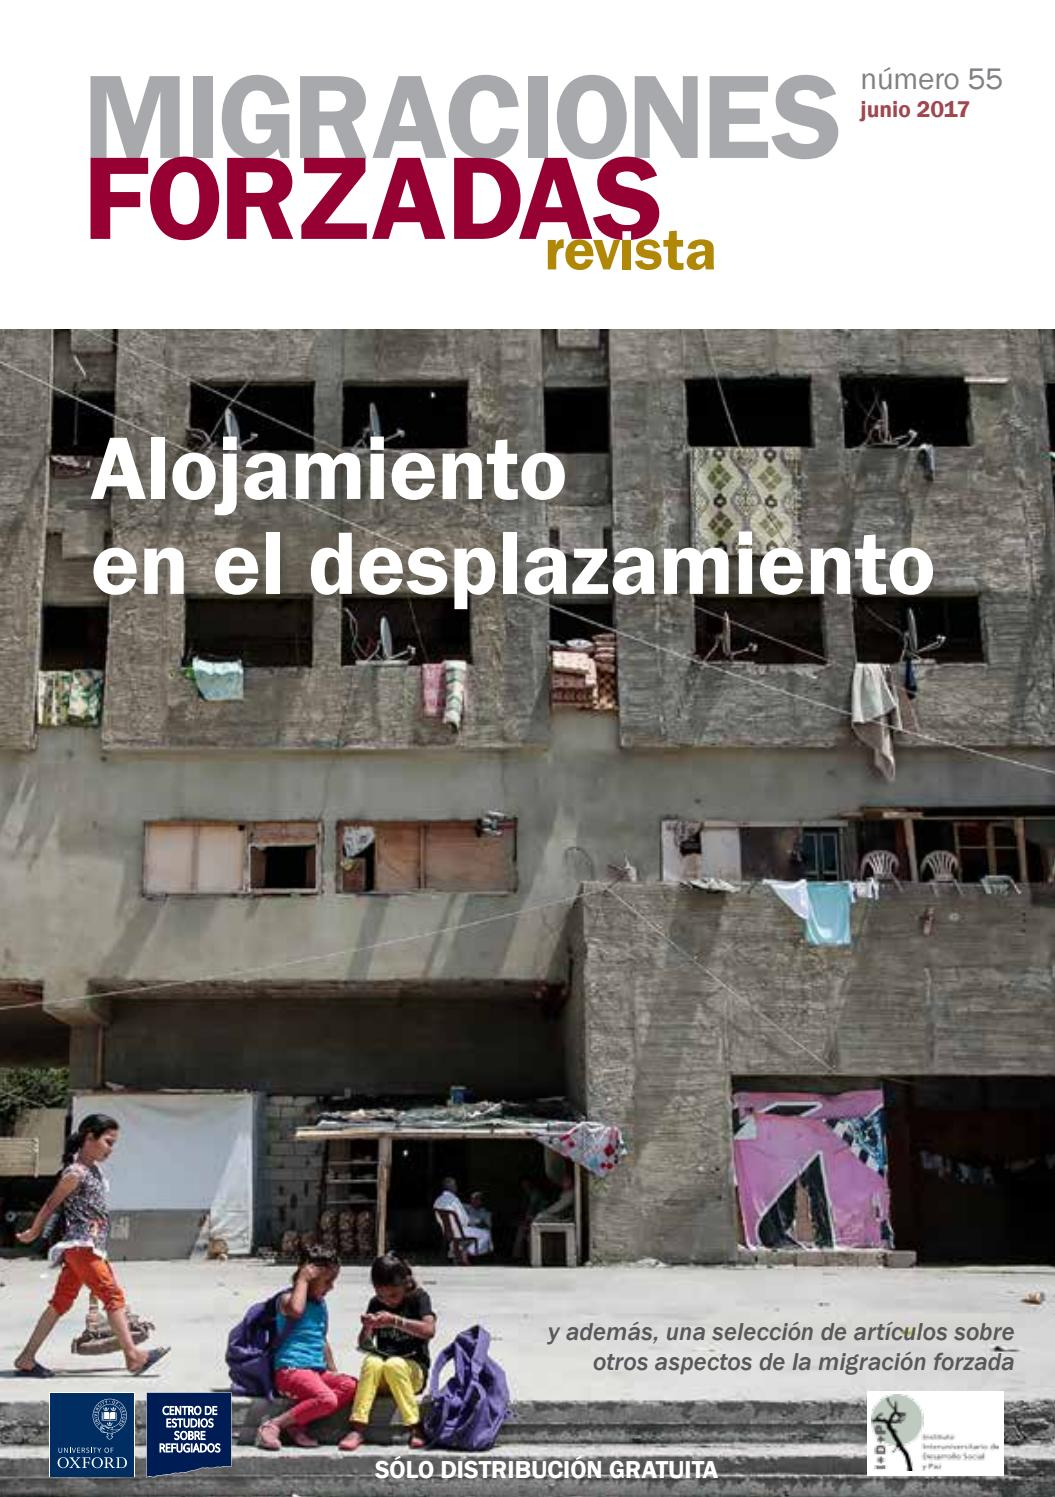 Revista Migraciones Forzadas 55 by Forced Migration Review - issuu